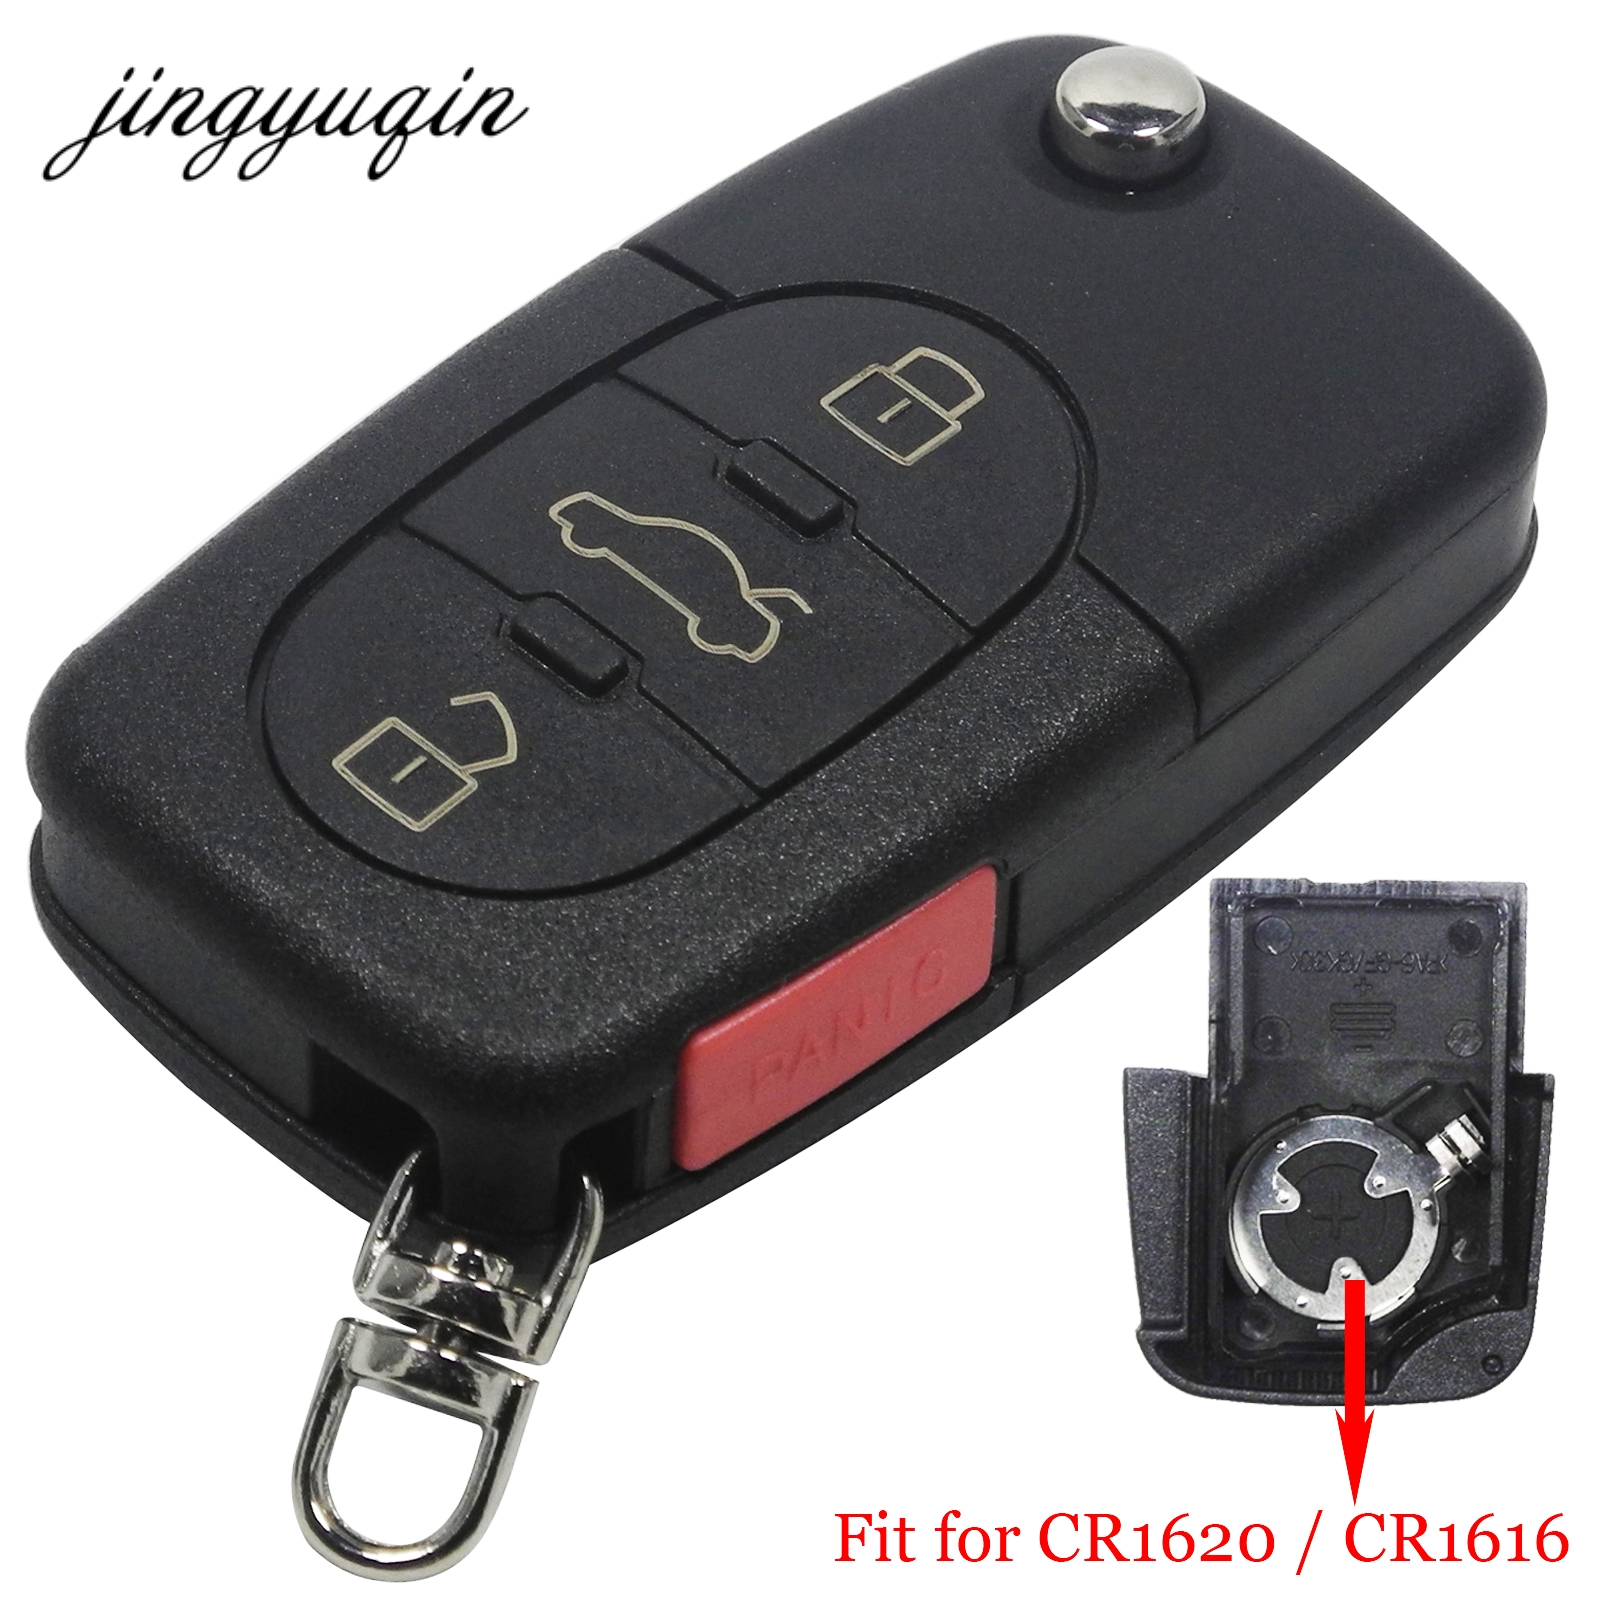 все цены на jingyuqin Flip Fob Remote Key Shell Case for VW Passat Jetta Golf Beetle 4/3+Panic Buttons Fit CR1616/CR1620